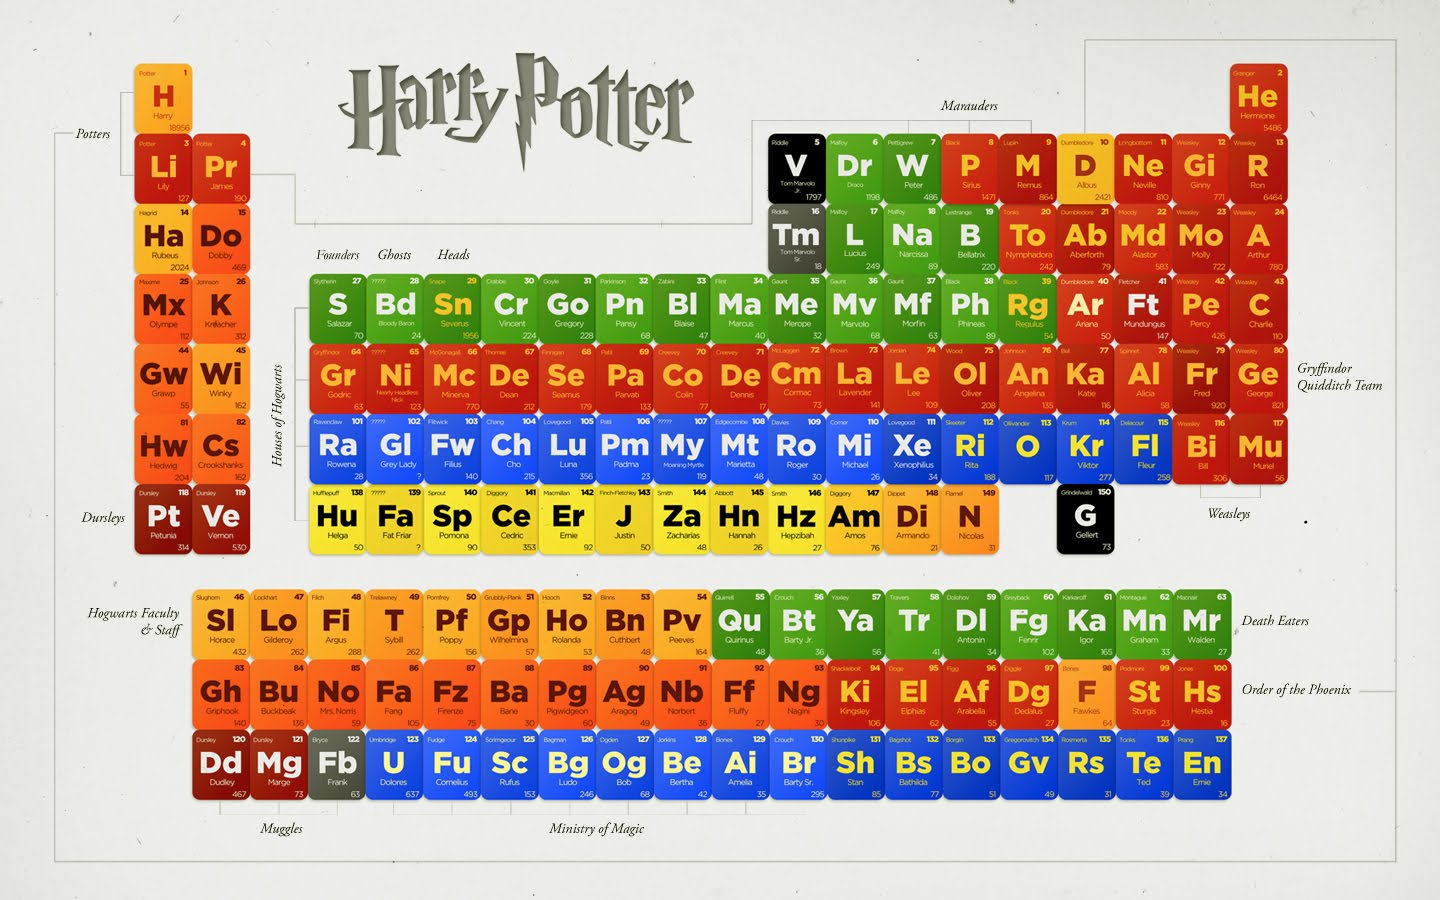 Harry potters periodic table dhruvs blog london the bane of chemistry students everywhere the periodic table urtaz Gallery